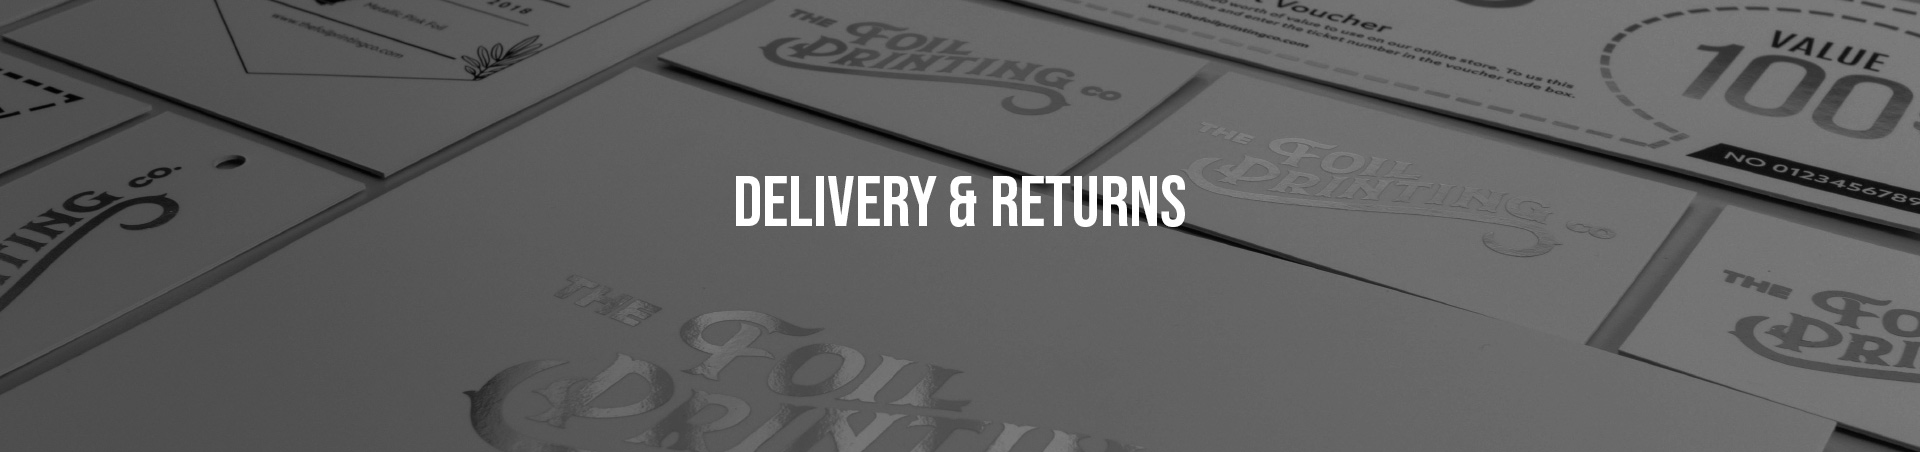 Delivery & Returns Banner